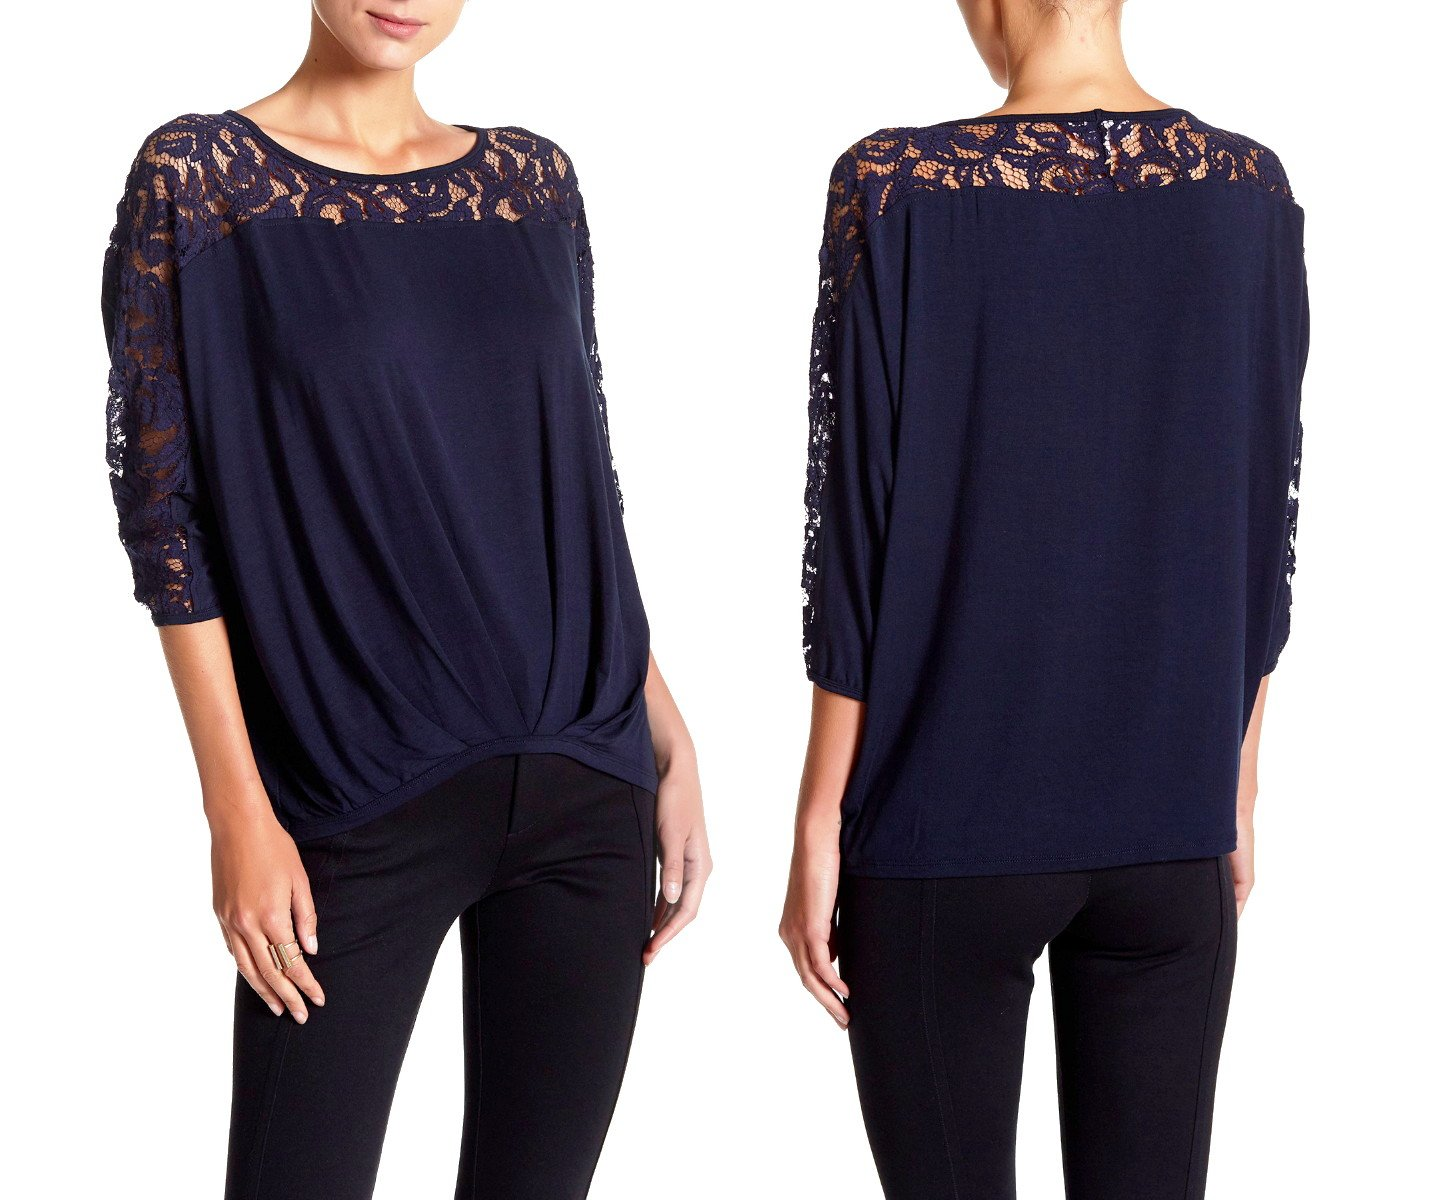 Nanette Lepore Lace Inset Blouson Tee Large 10 12 Dark Navy Shirt Top